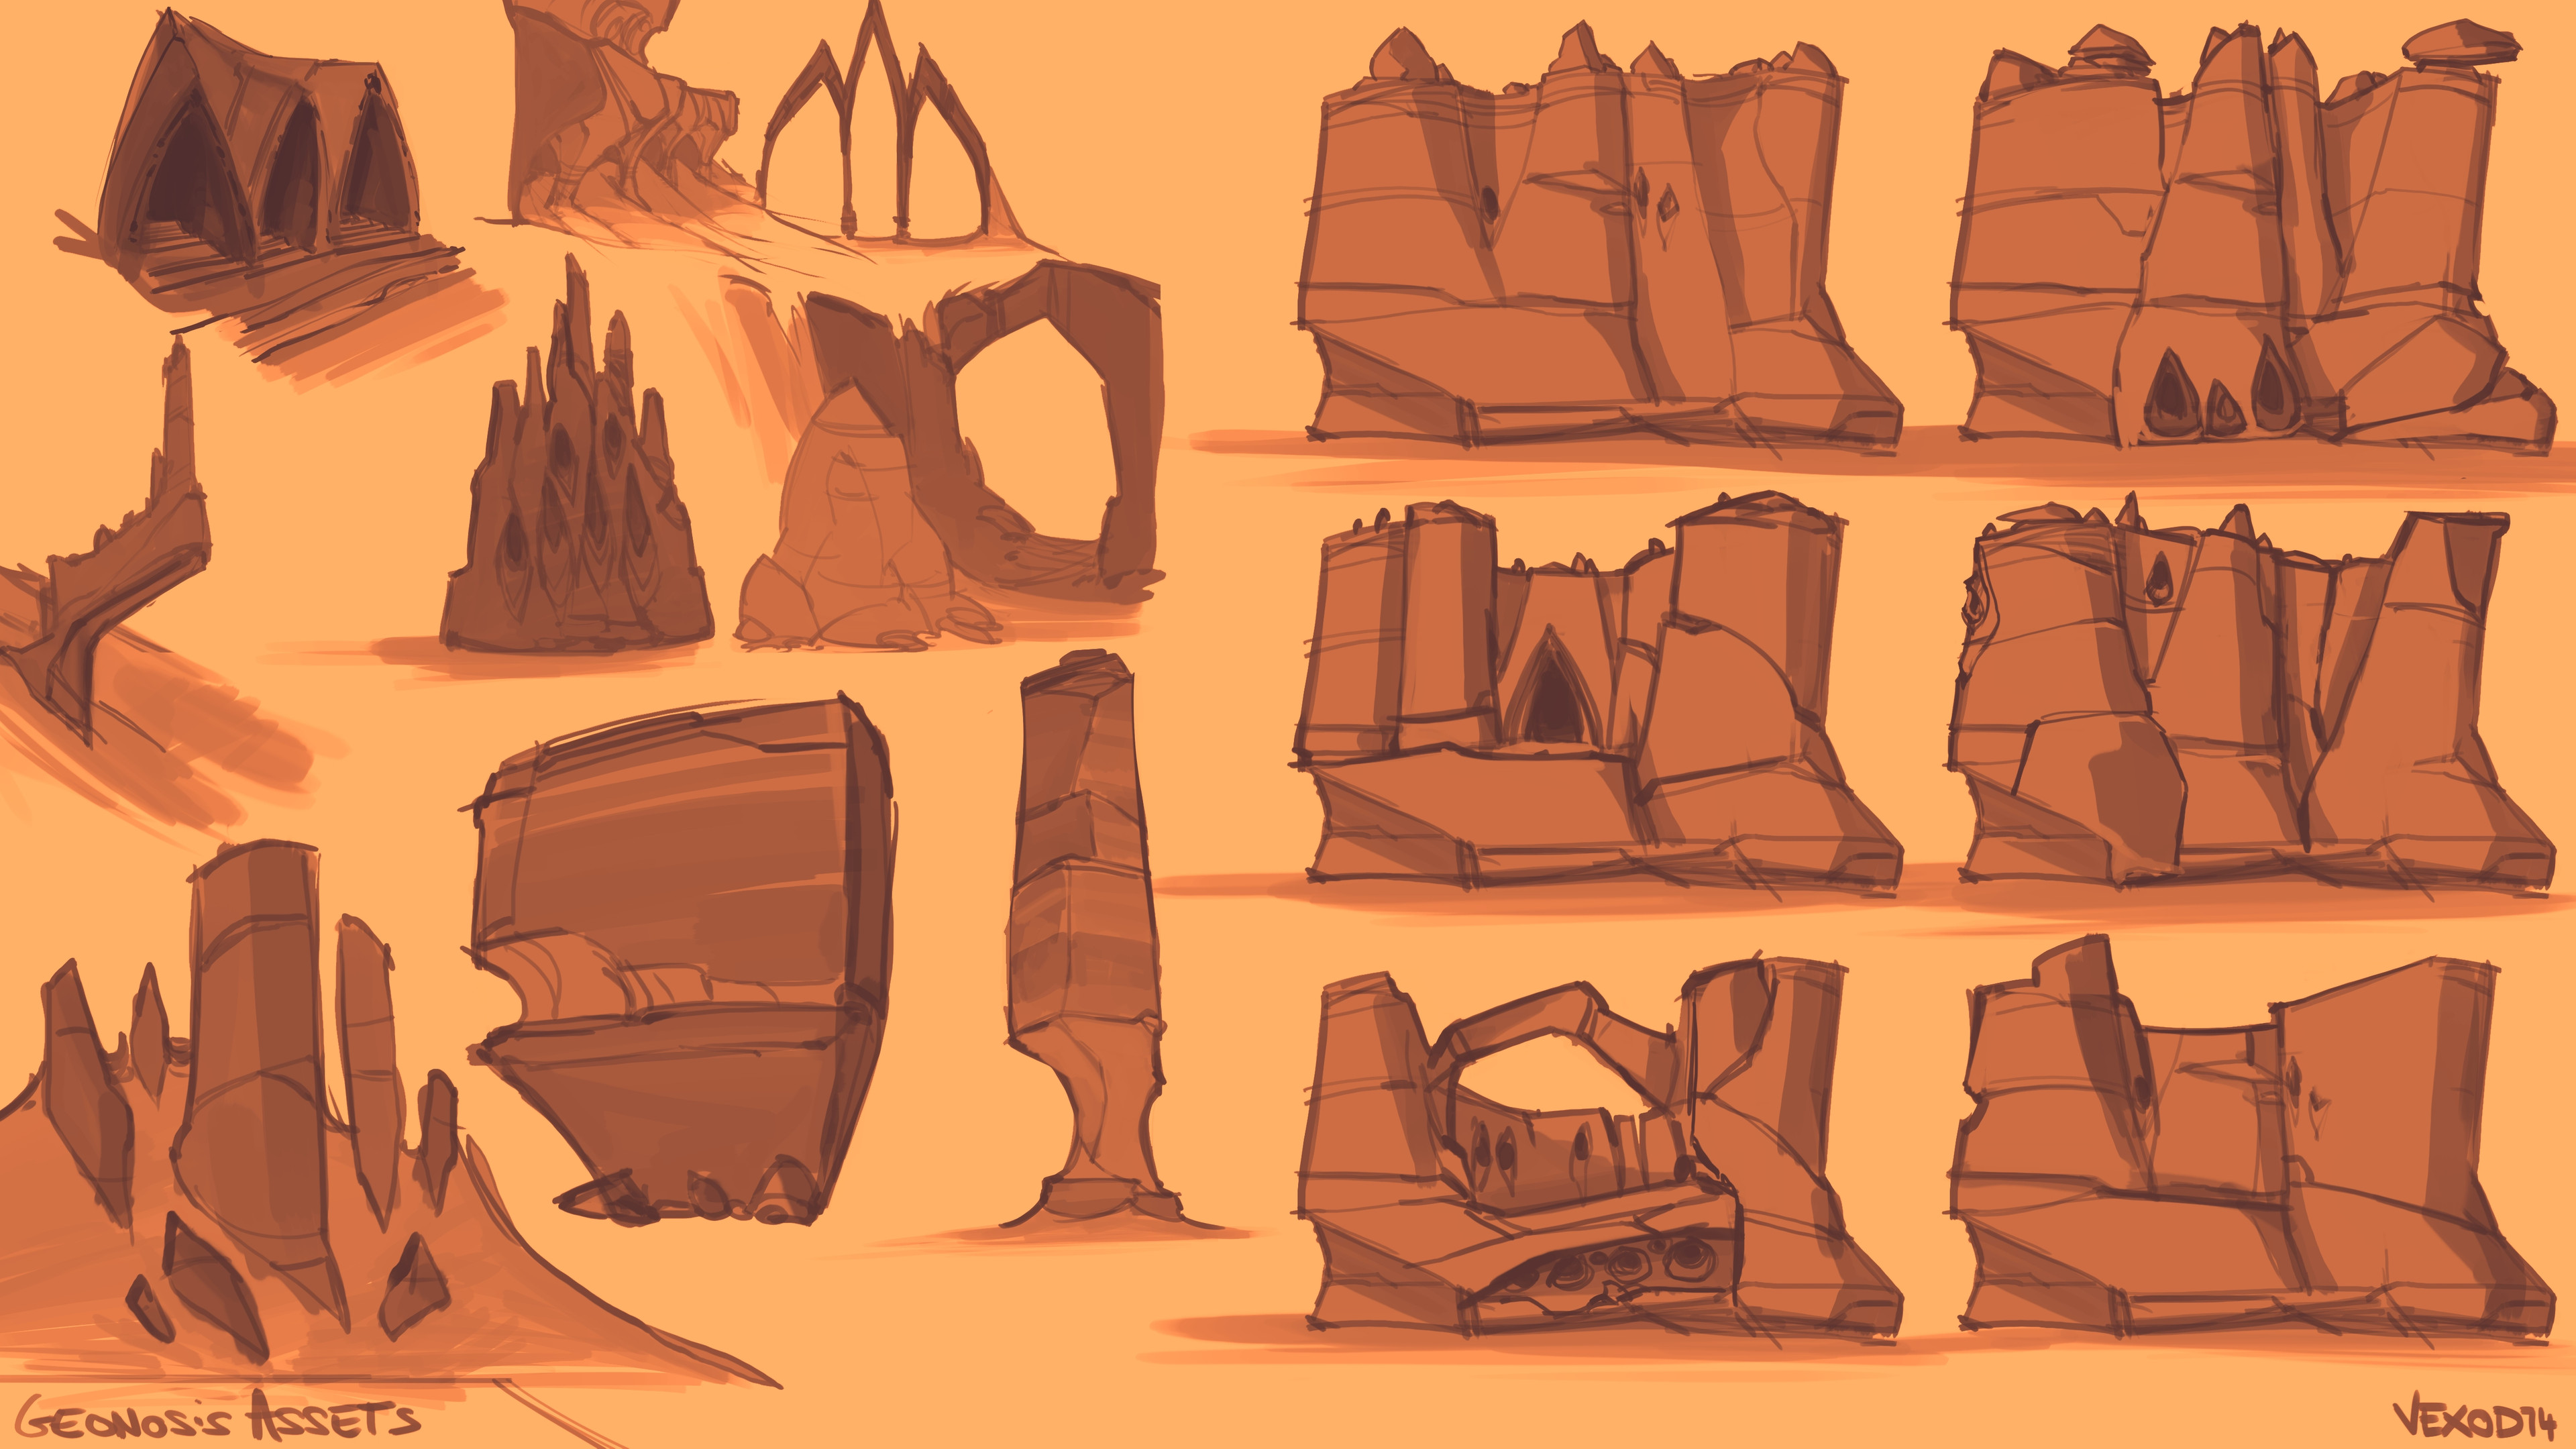 Additional concepts for Geonosis, more focused on Architecture